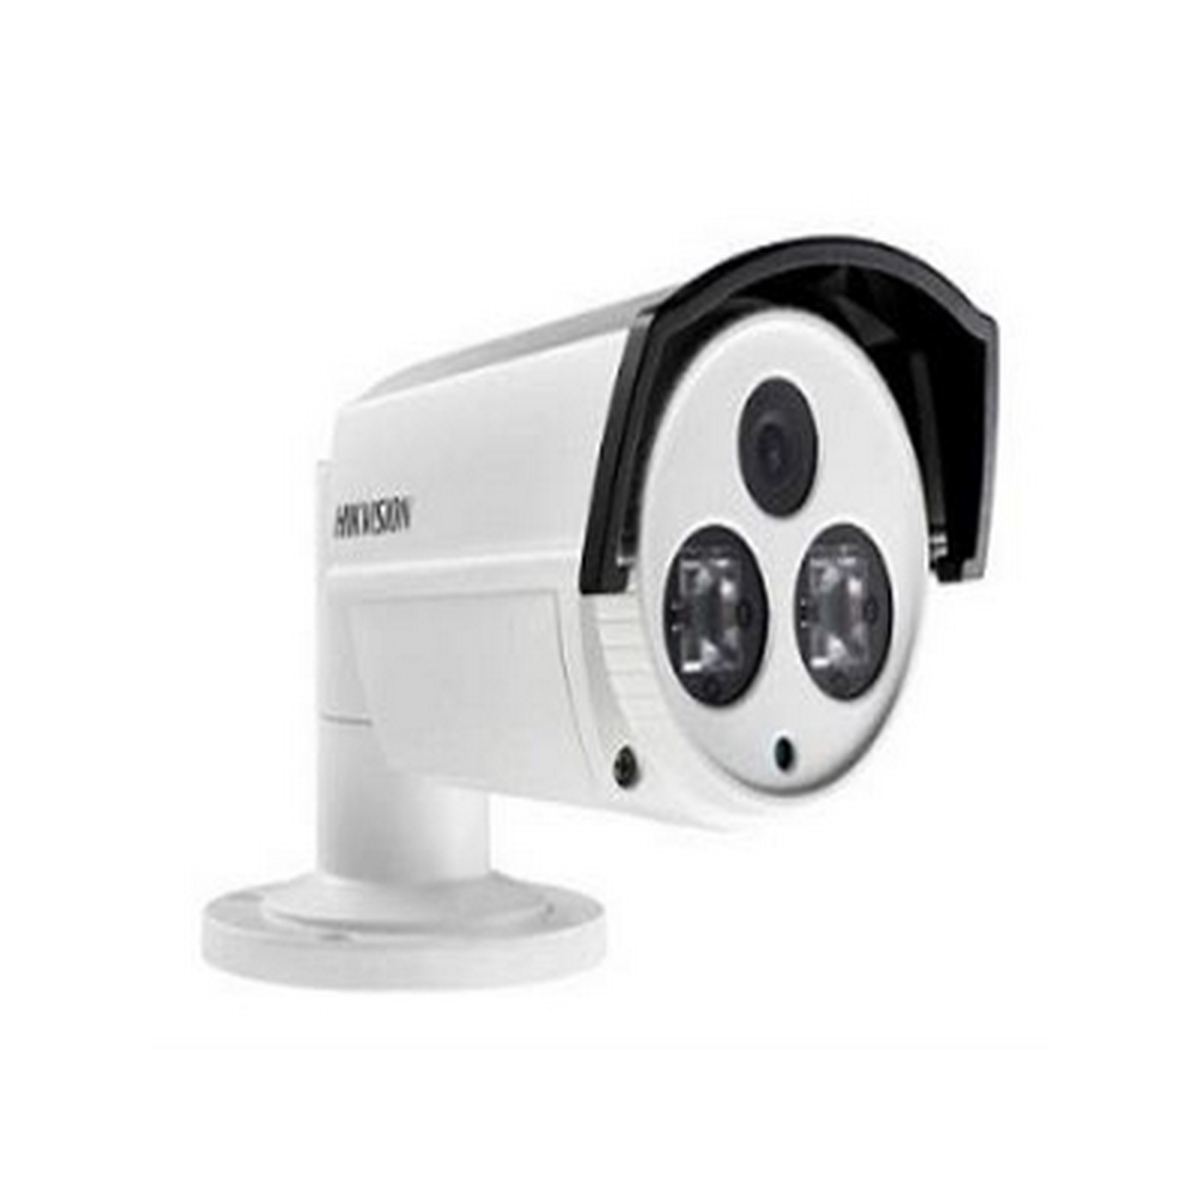 Outdoor Bullet, 3MP/1080p, H264, 4mm, Day/Night, EXIR (50m), IP66, PoE/12VDC